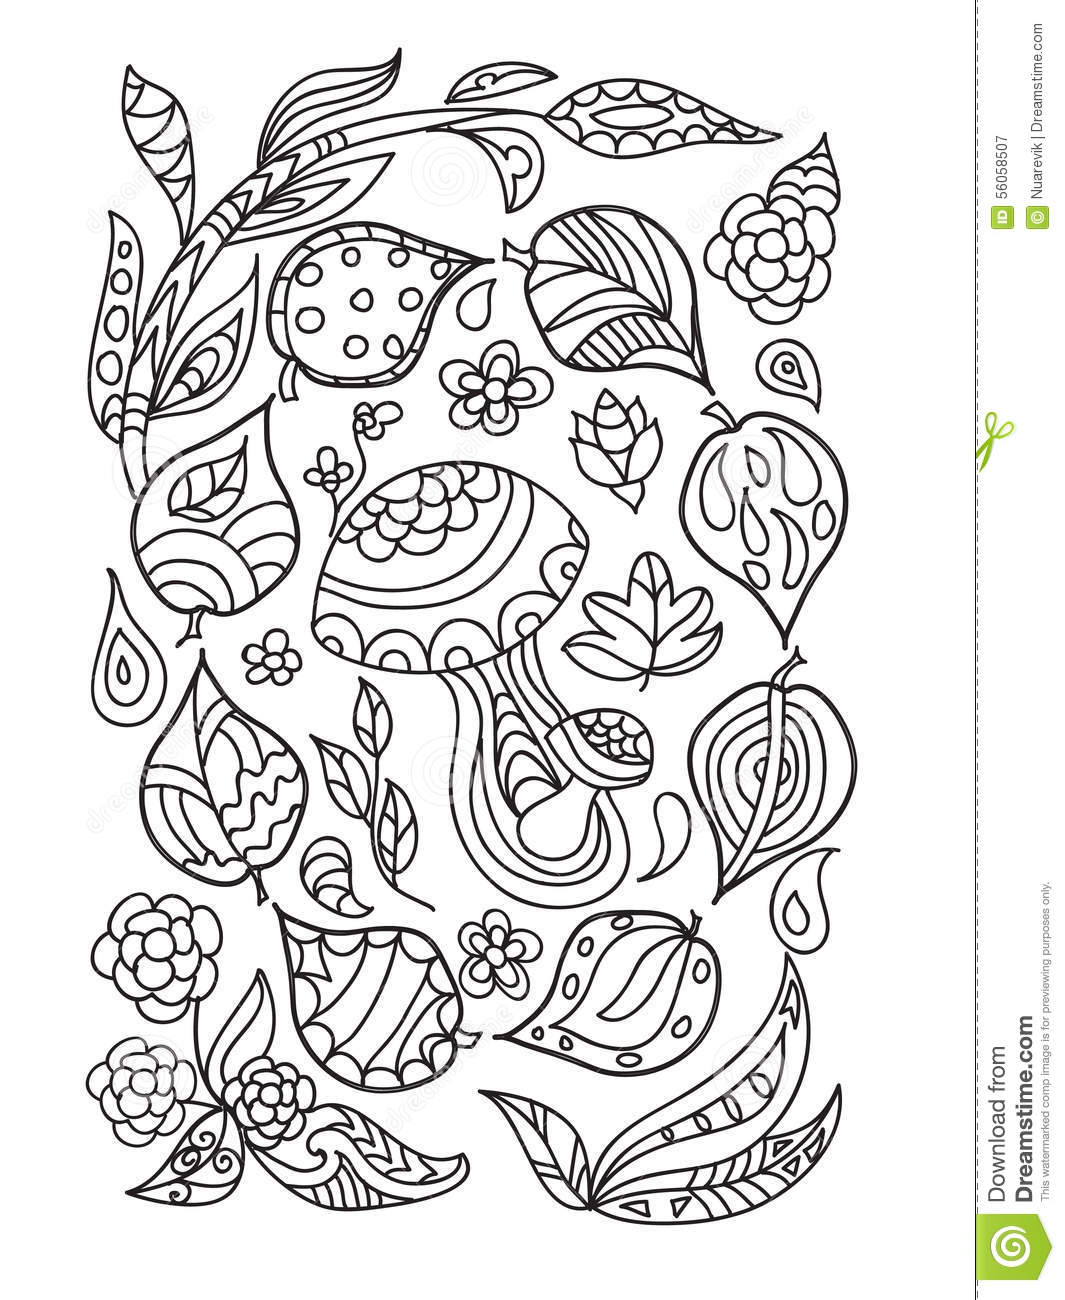 Autumn Zentangle Stock Illustration. Illustration Of